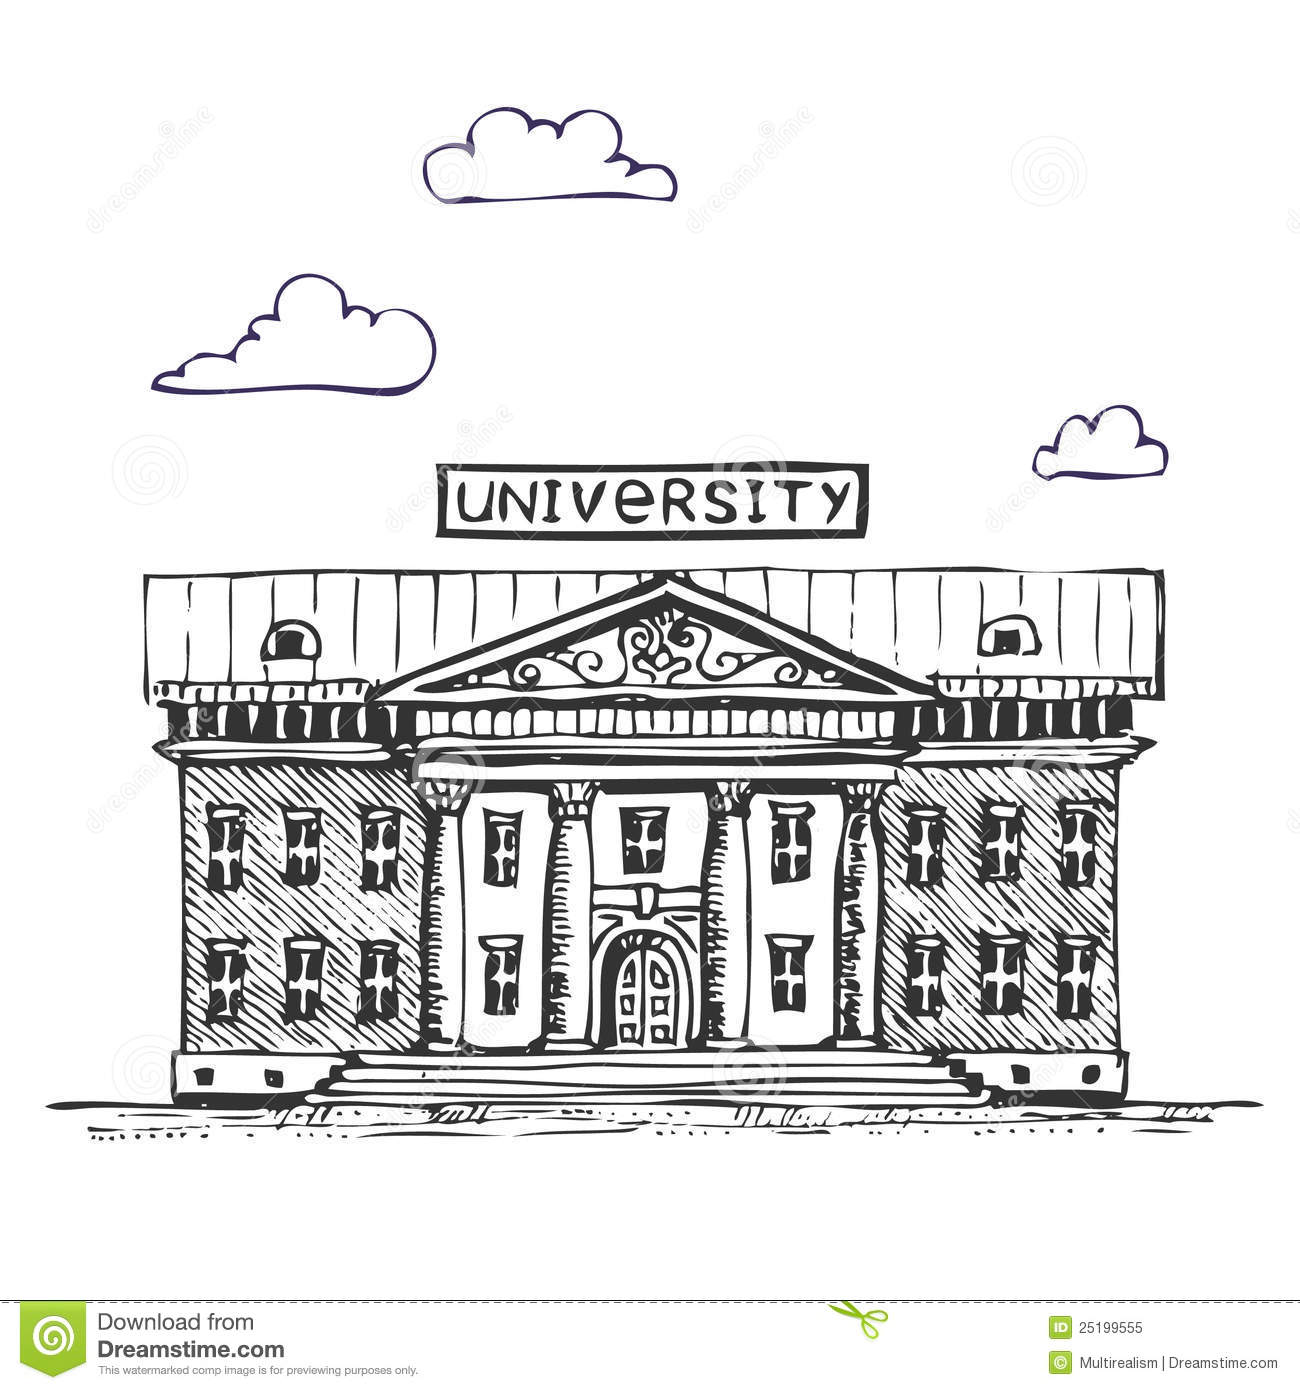 University building stock vector. Illustration of